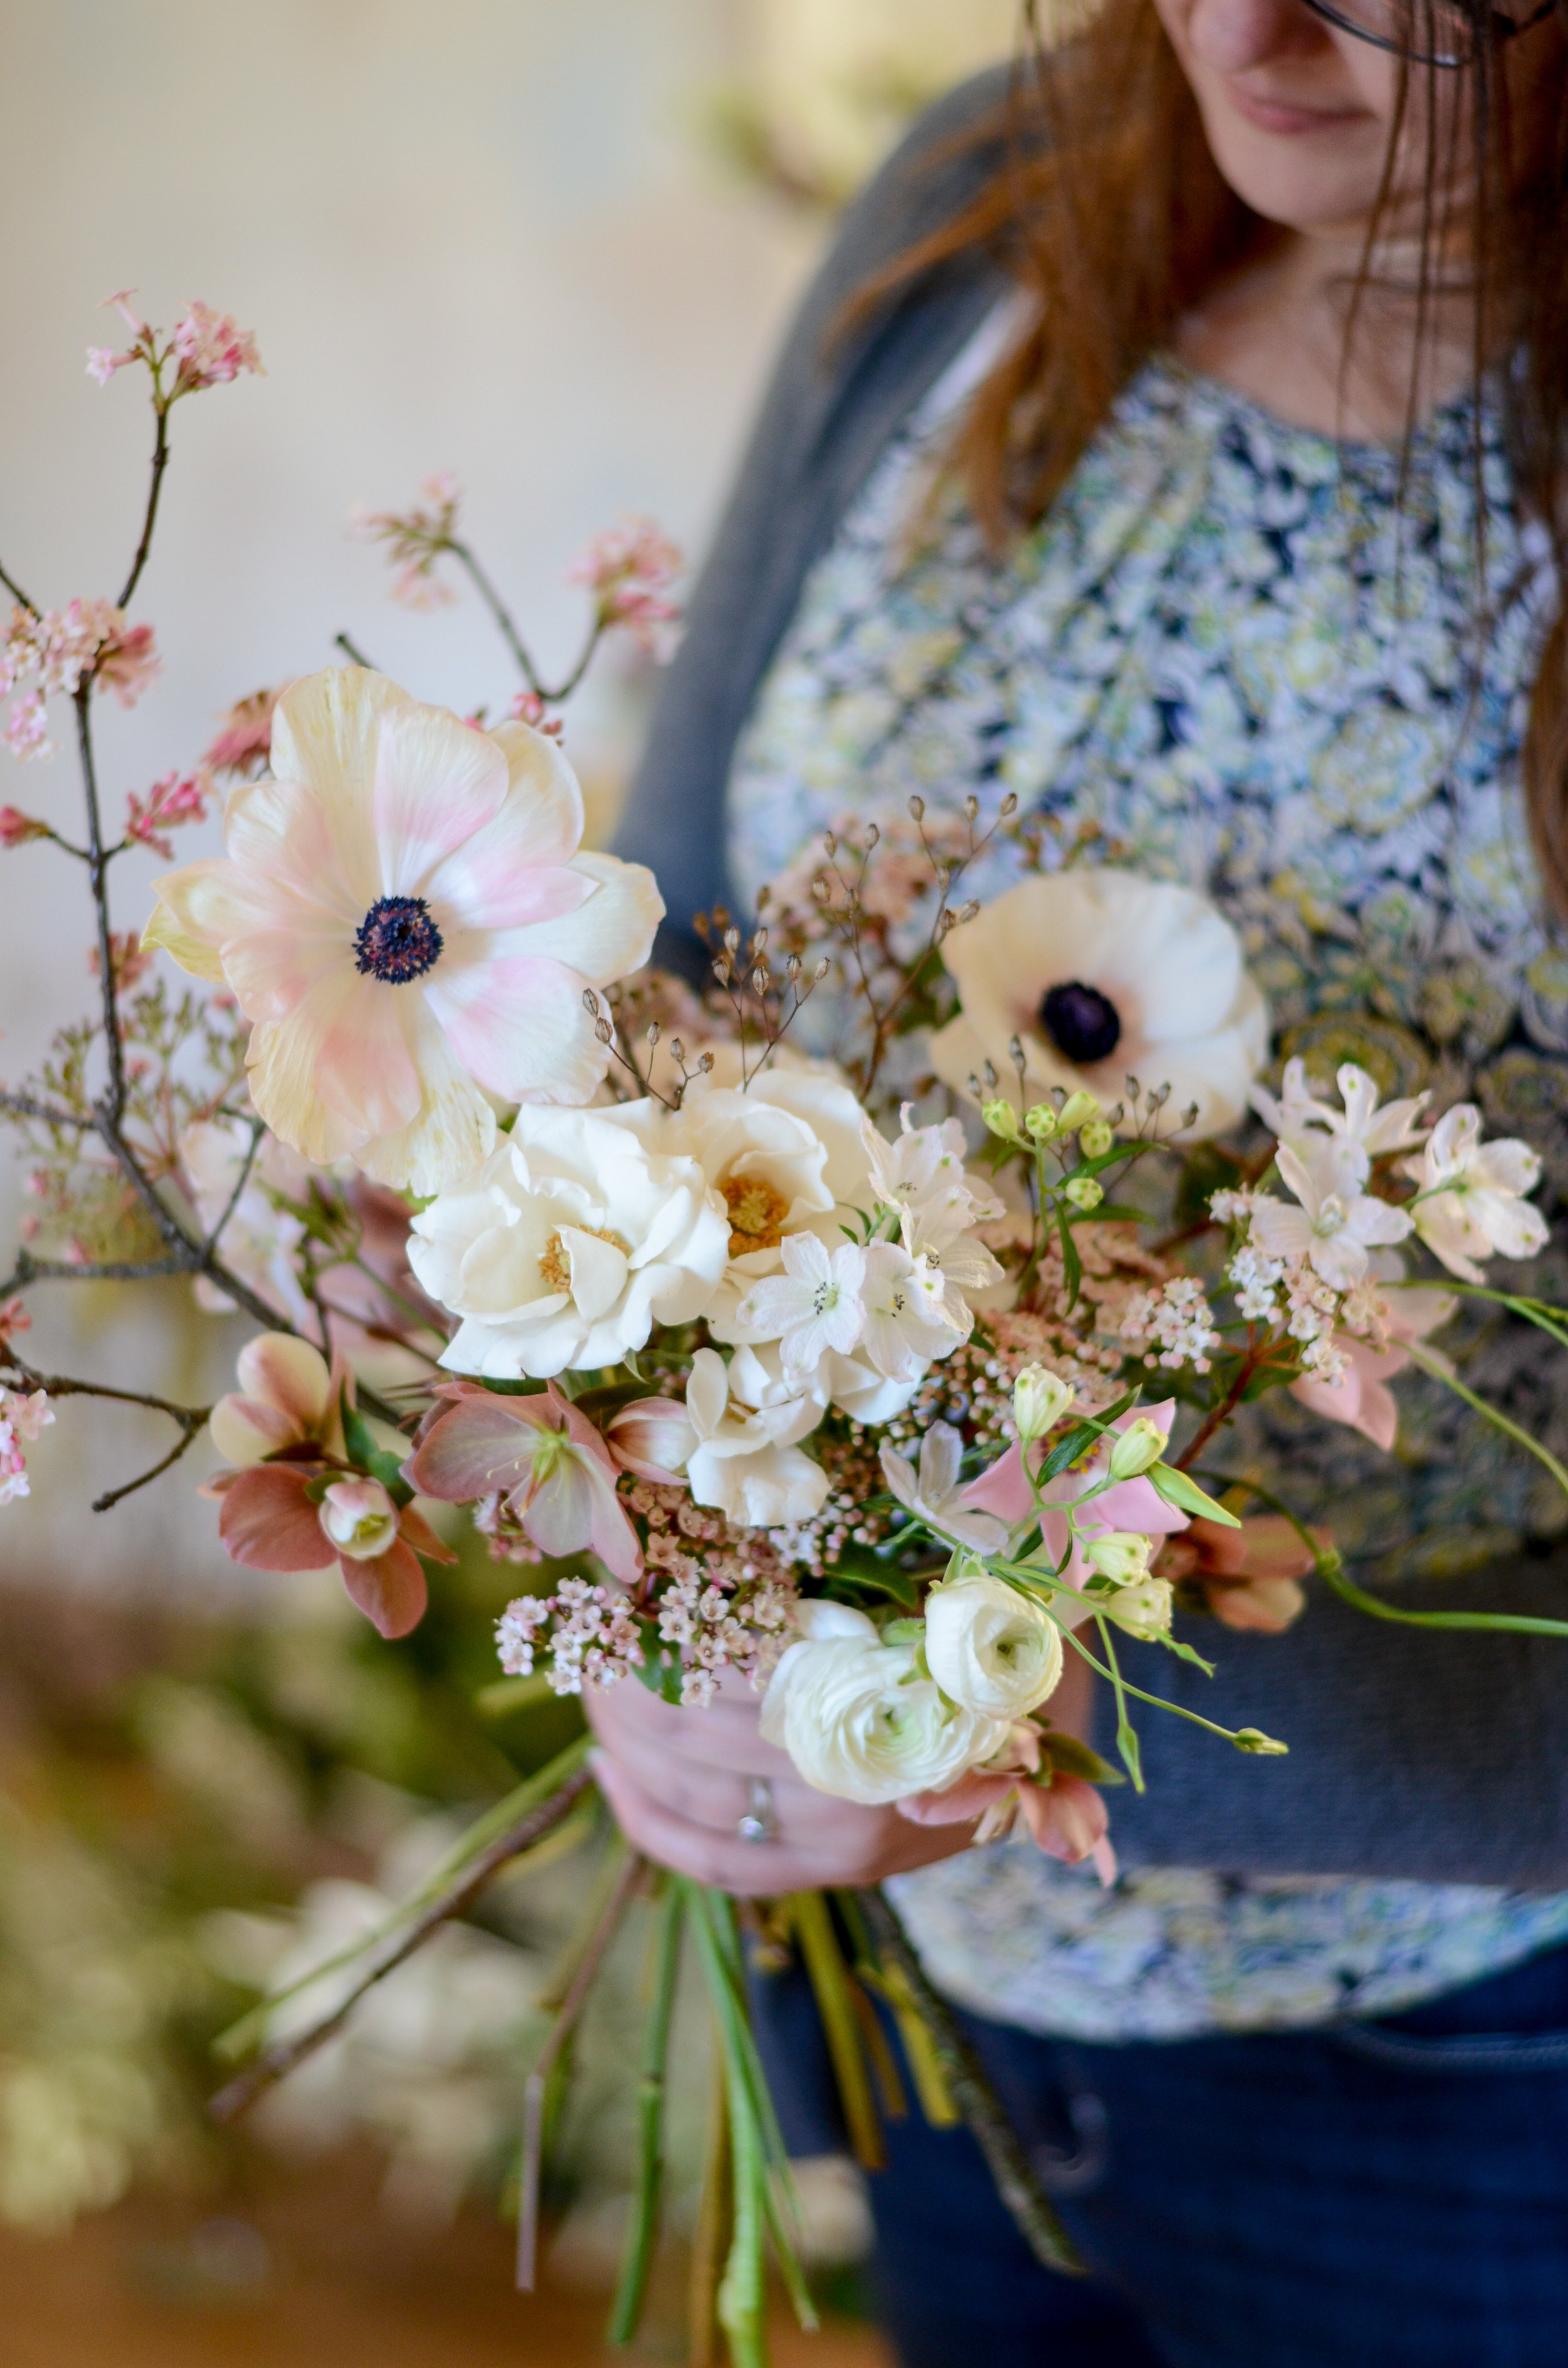 Florals - Alluring Blooms at Moss & Stone 1:1 Workshop | Image - Brigitte Girling